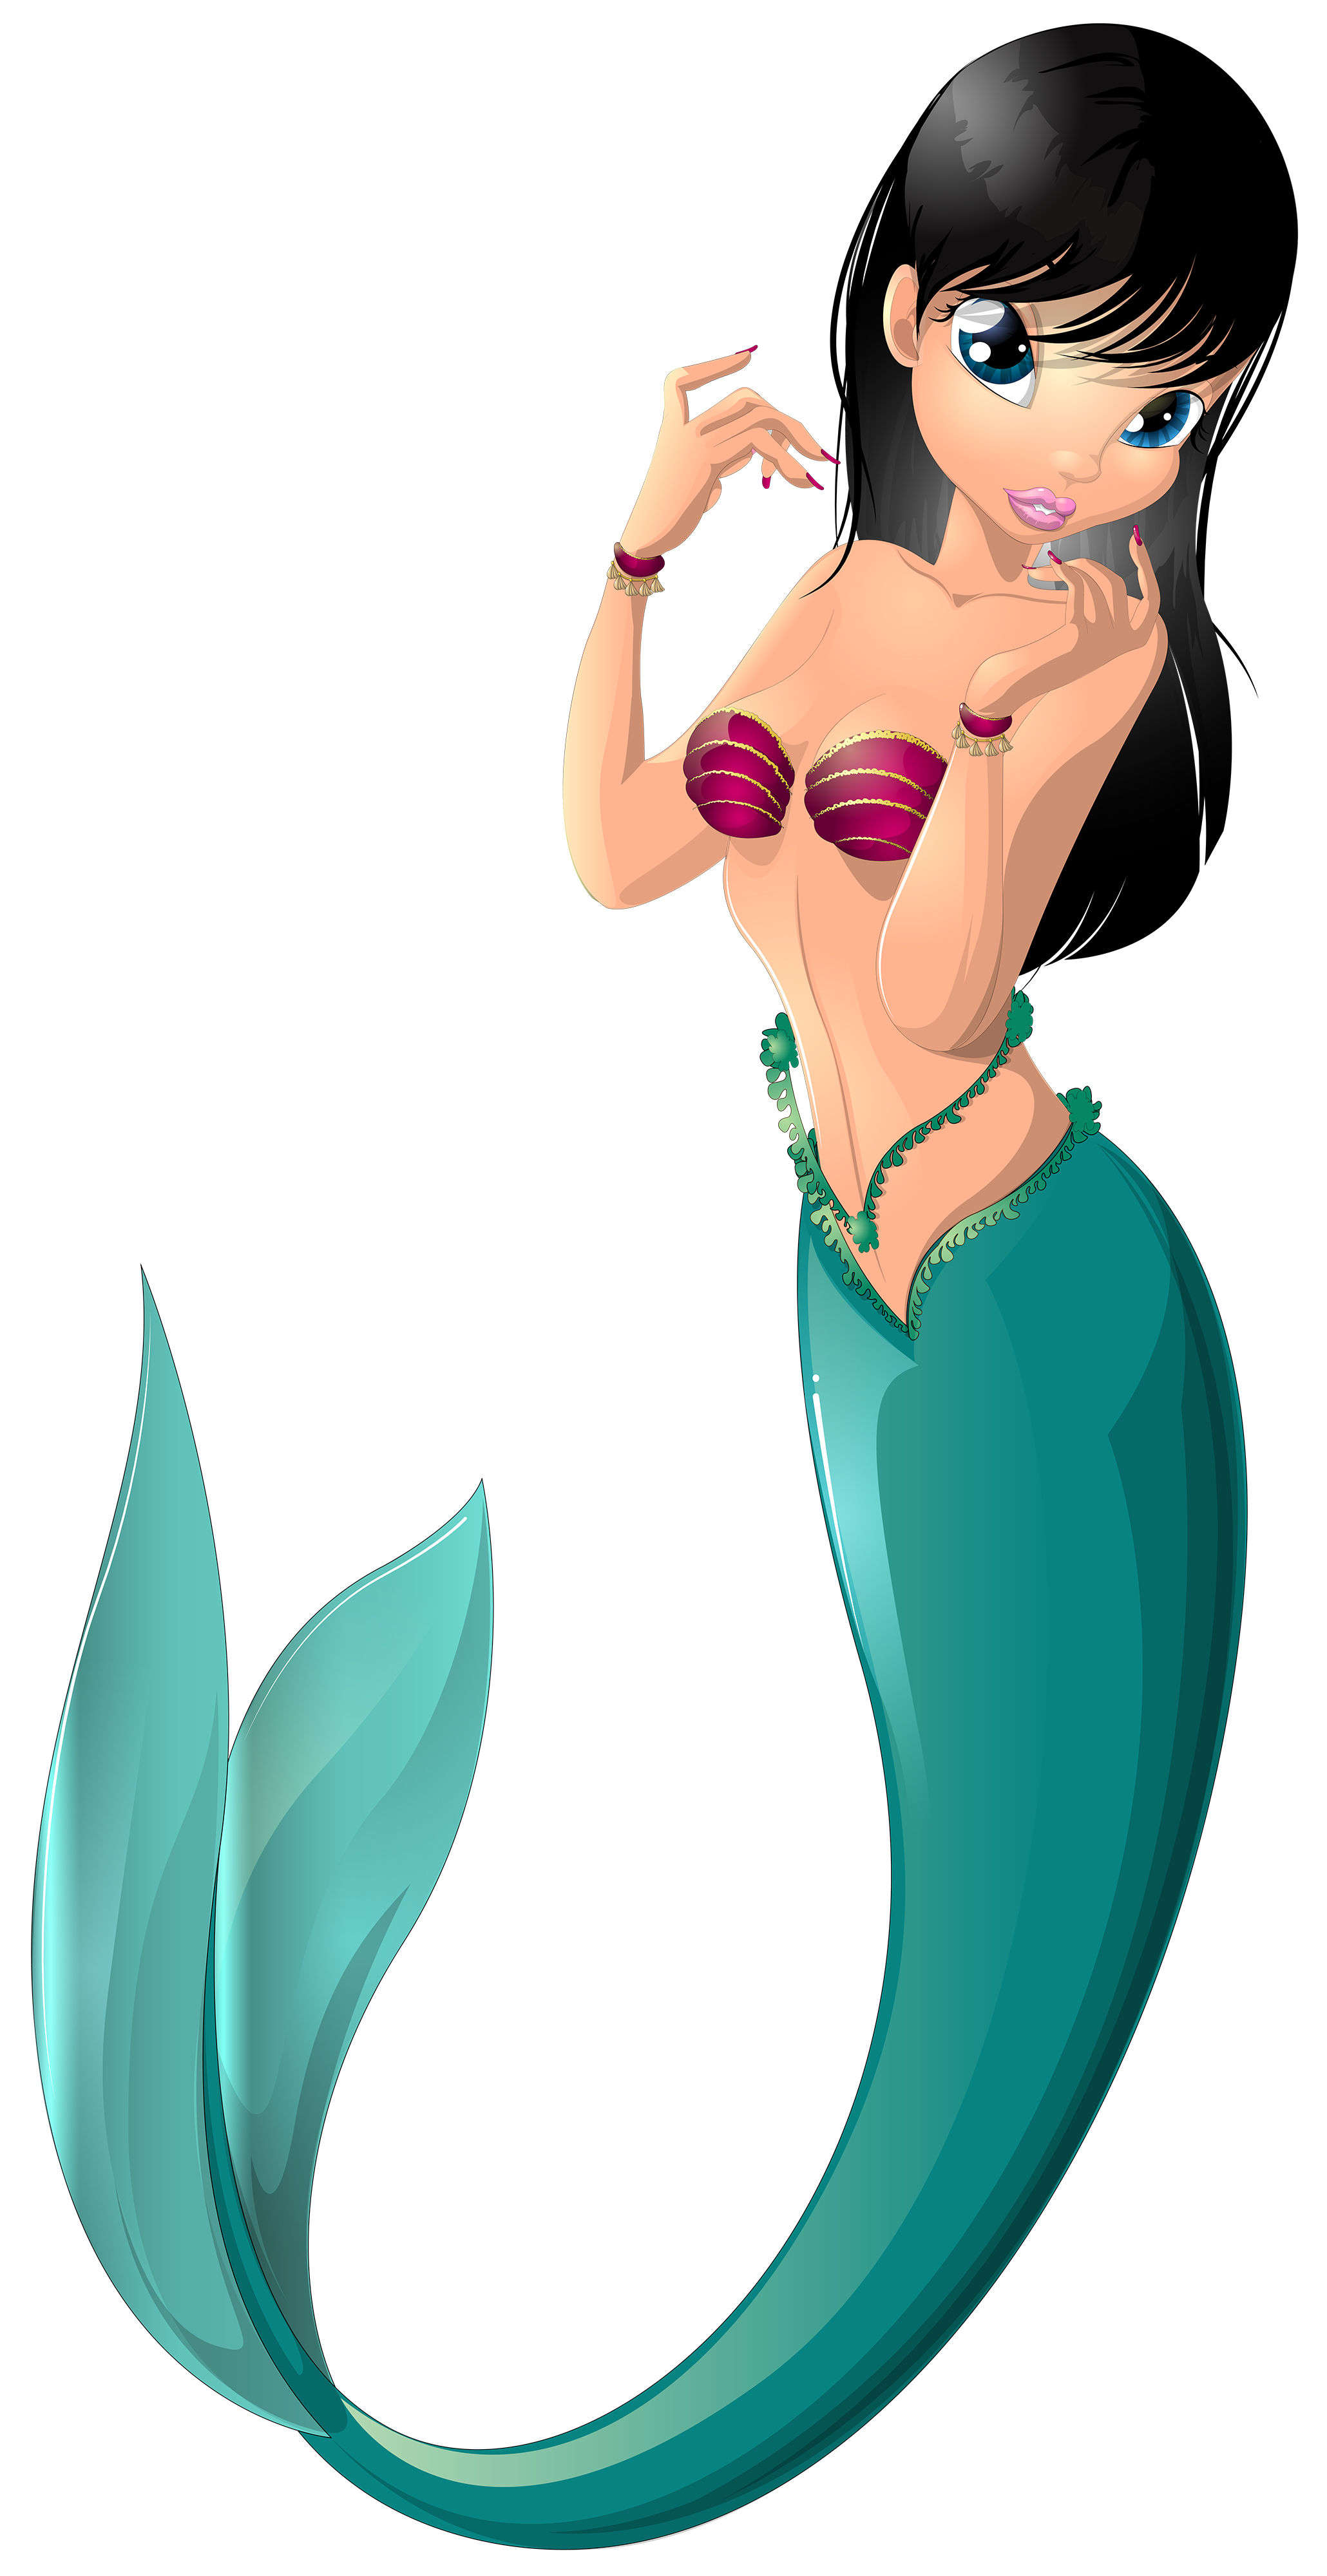 Mermaid clipart with fish banner transparent download Mermaid PNG Transparent Free Images | PNG Only banner transparent download